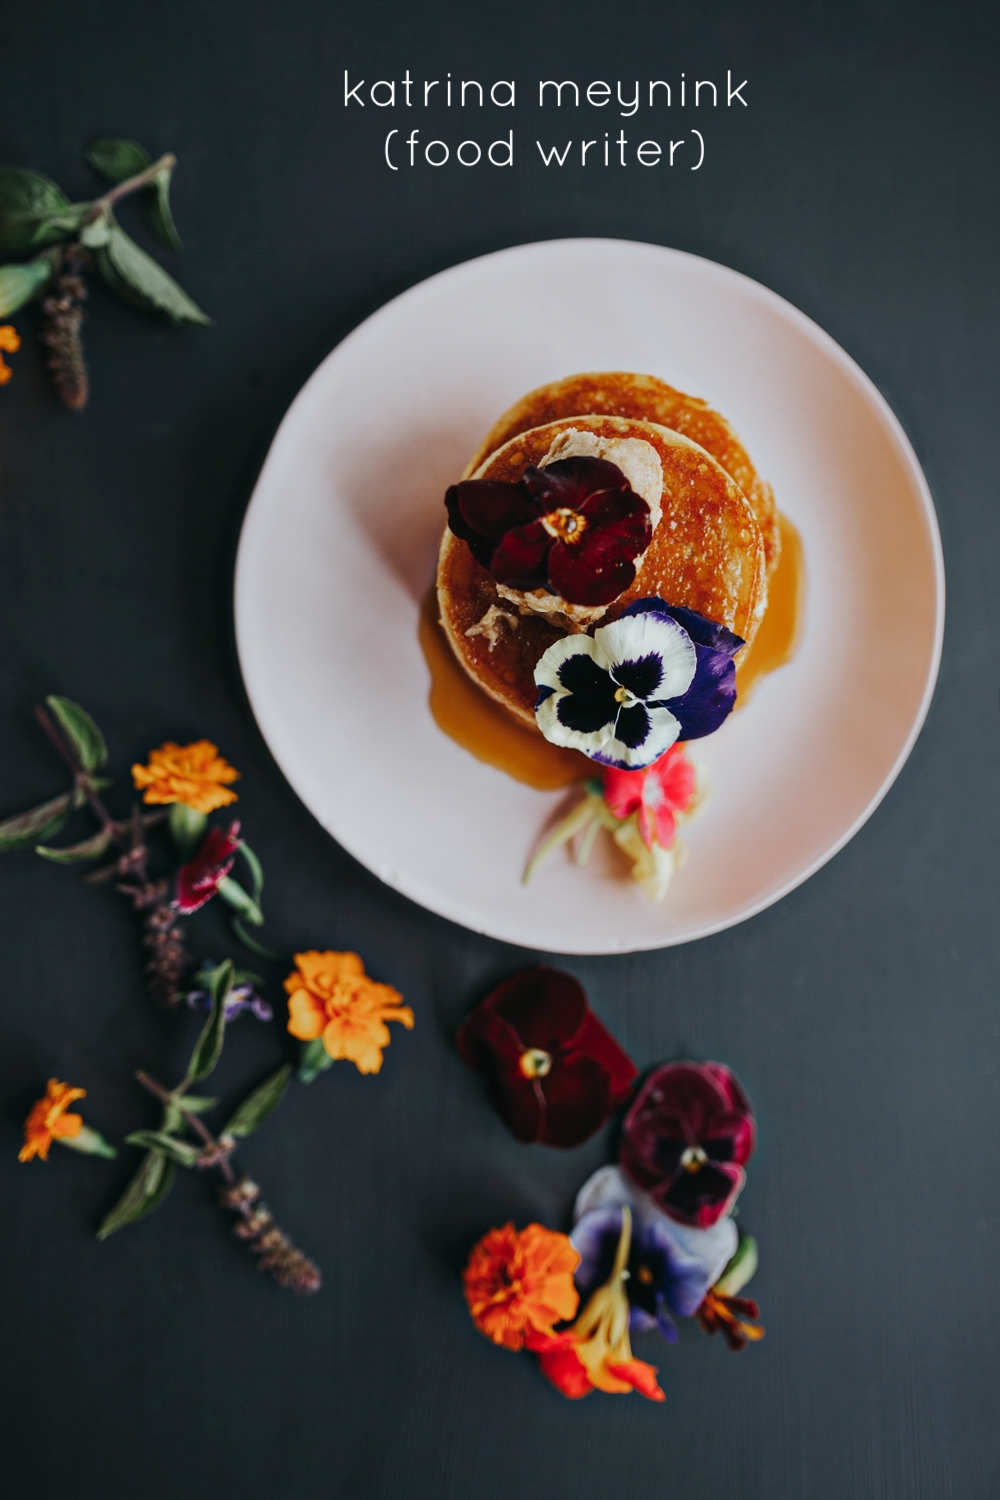 Image of crumpets sitting on a plate with golden honey and bright flowers for katrina meyning food writer.